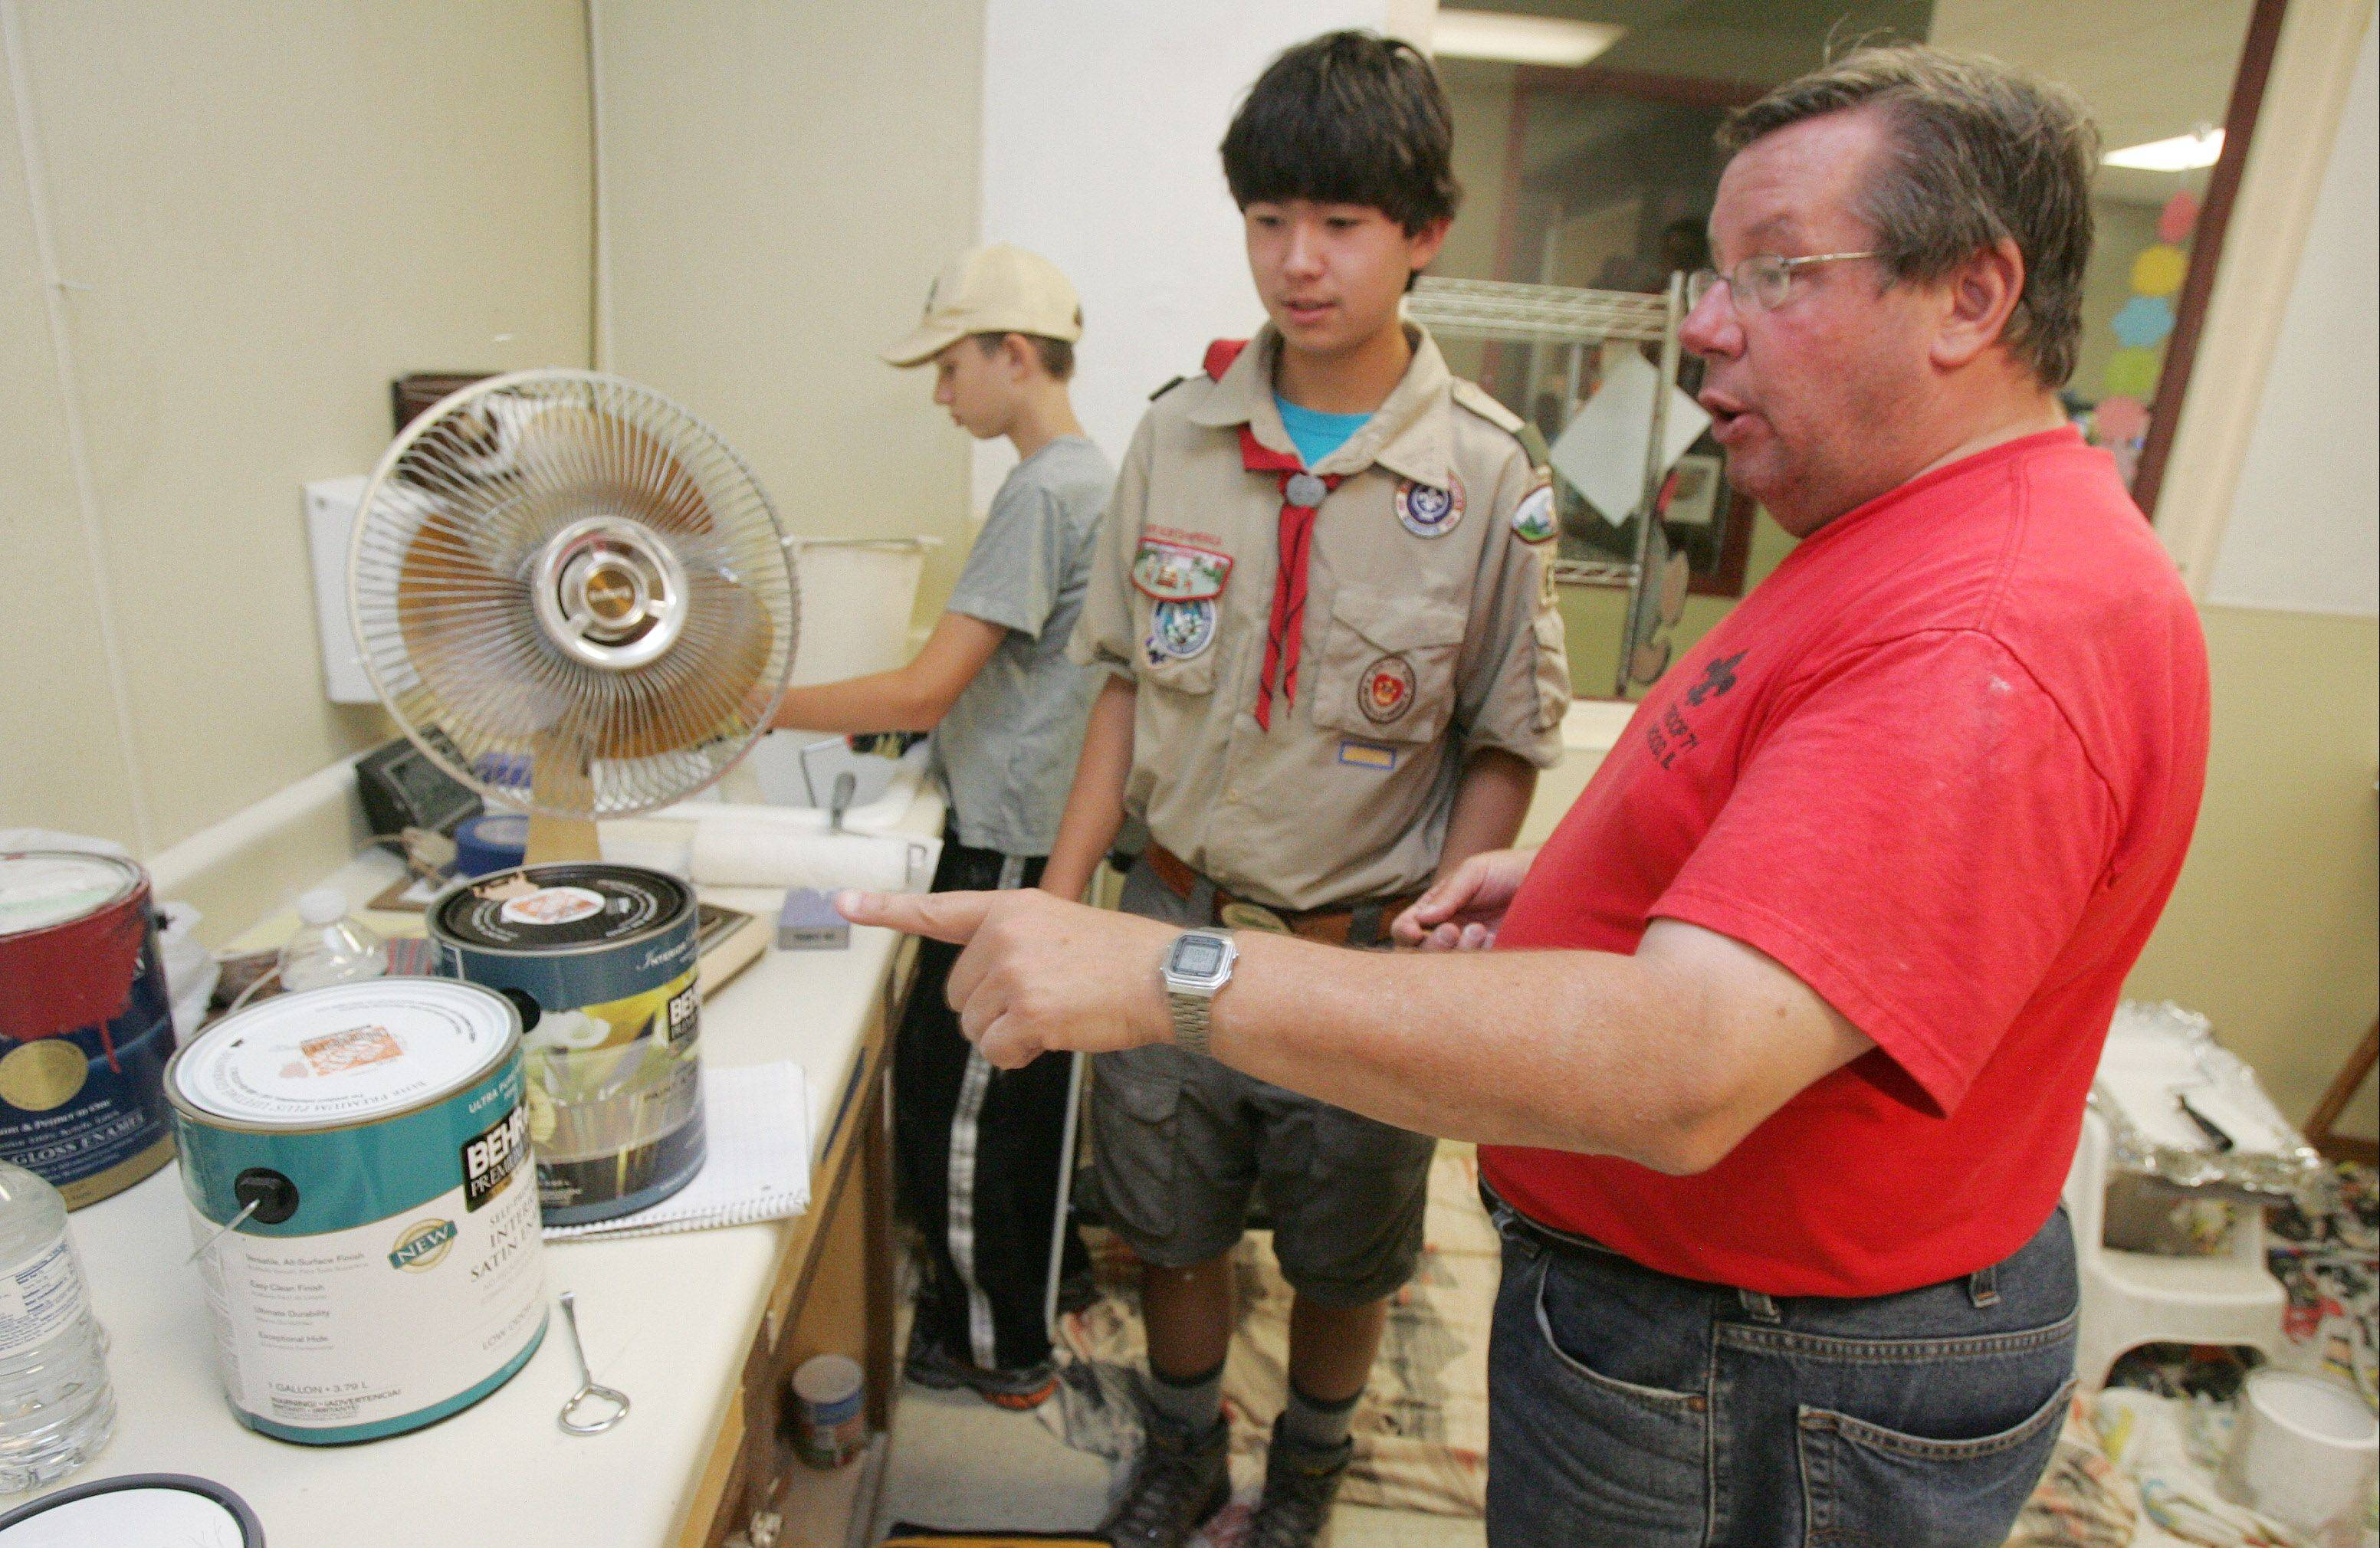 Scott Seiler of Boy Scout Troop 671, center, talks to his father, Todd, about the paint as he organizes a face lift of the Kitten Room at the Save-A-Pet Adoption Center in Grayslake Sunday. Scouts and leaders worked together on the room as part of Scott's Eagle Scout project.